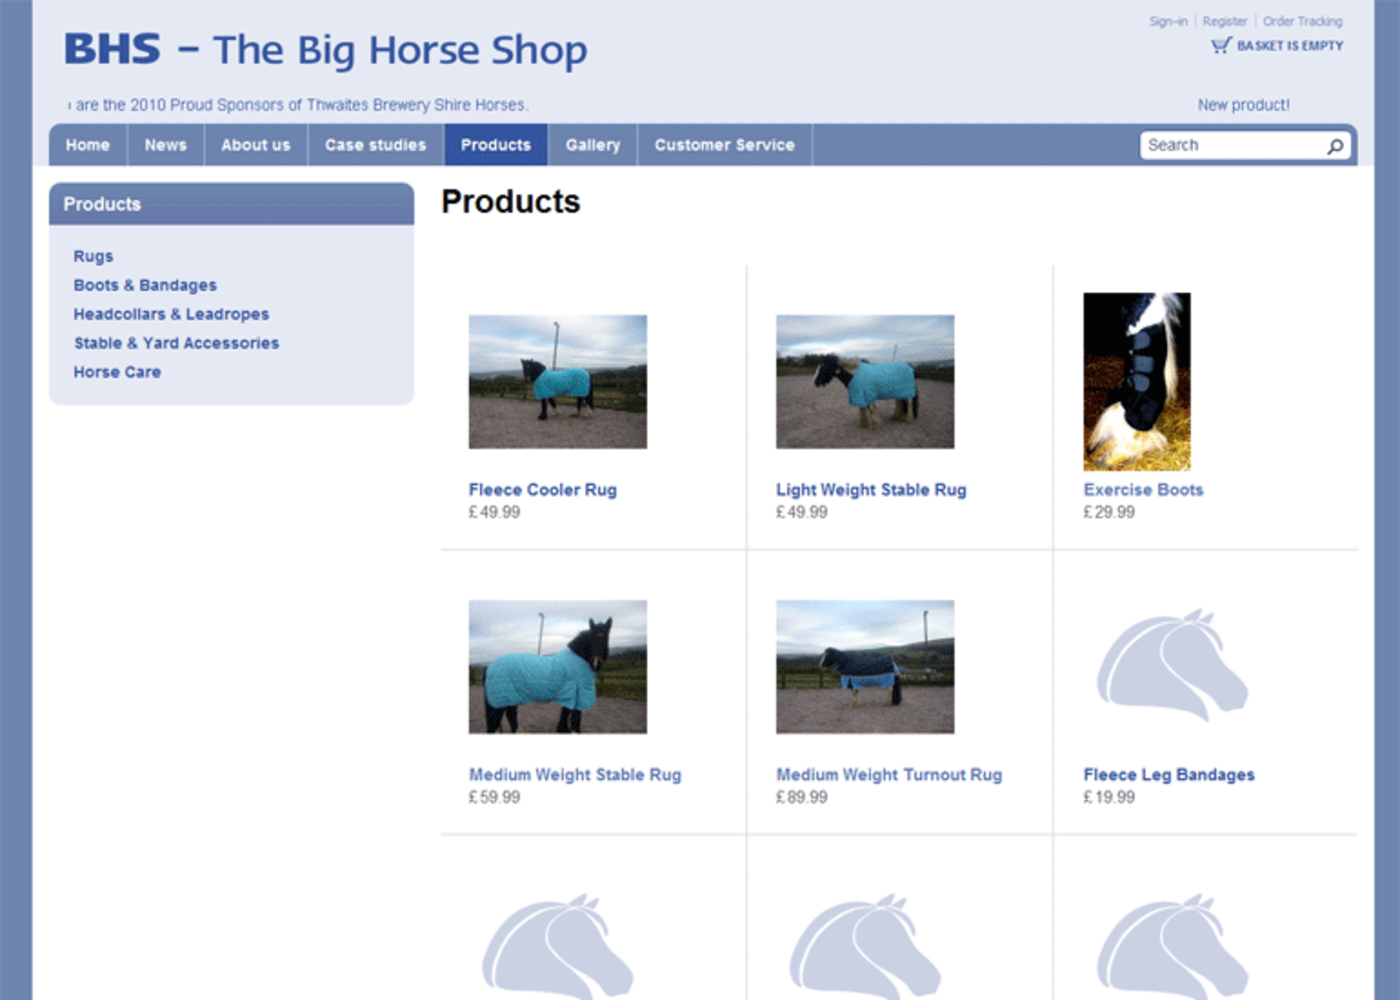 The Big Horse Shop (2009) Products